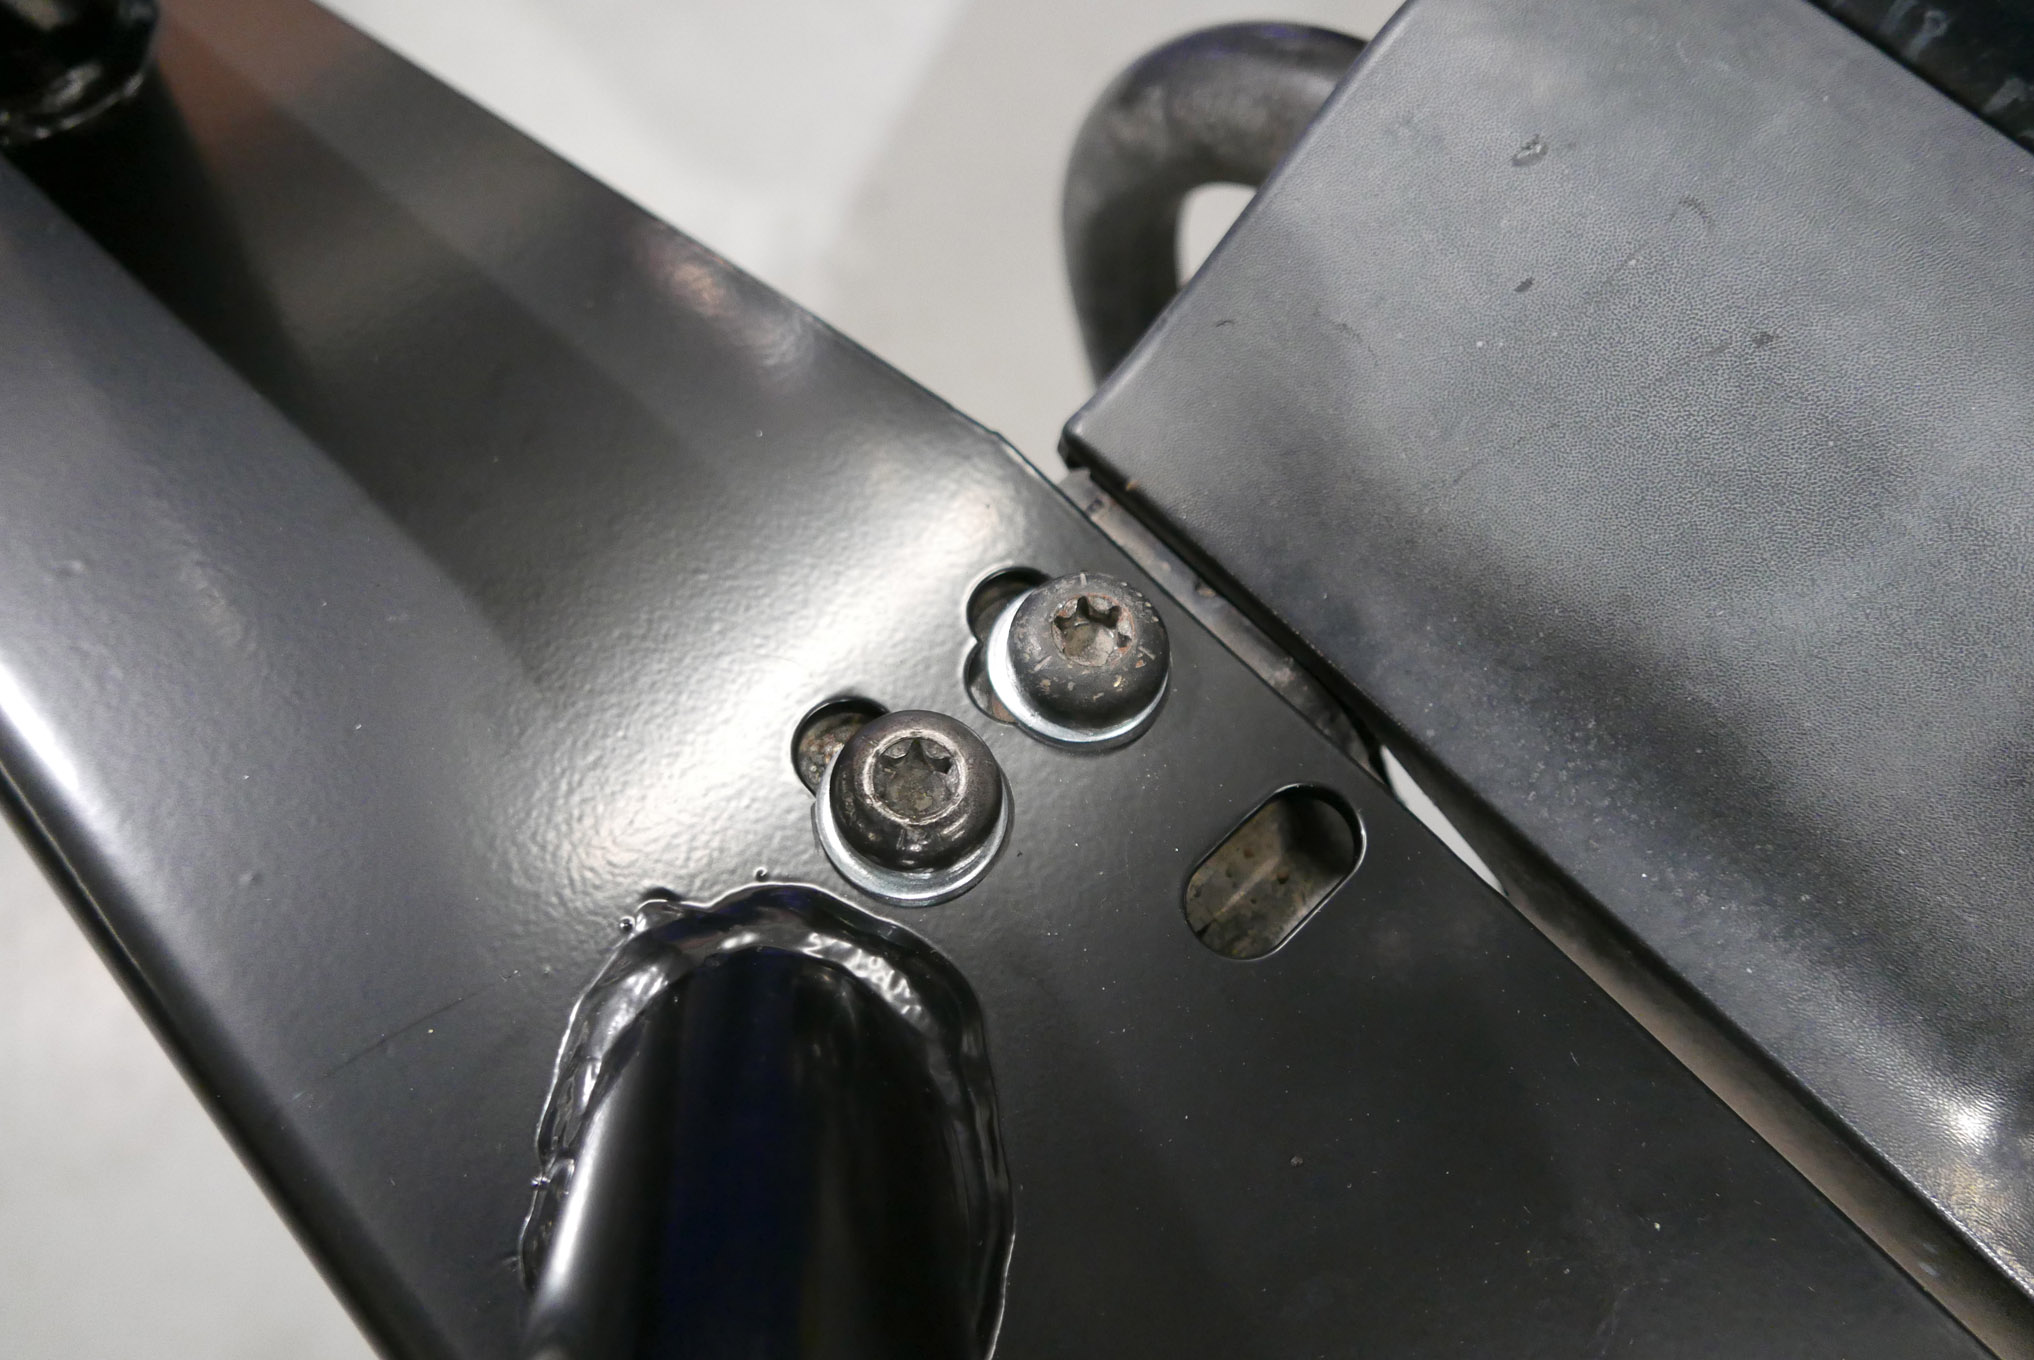 We removed the stock front bumper and saved the factory hardware for reuse. The C-channel design of the front Rampage Recovery bumper (PN 76510) made it easy to slide onto the frame horns so it could be secured up top with two of the stock Torx bolts on each end.